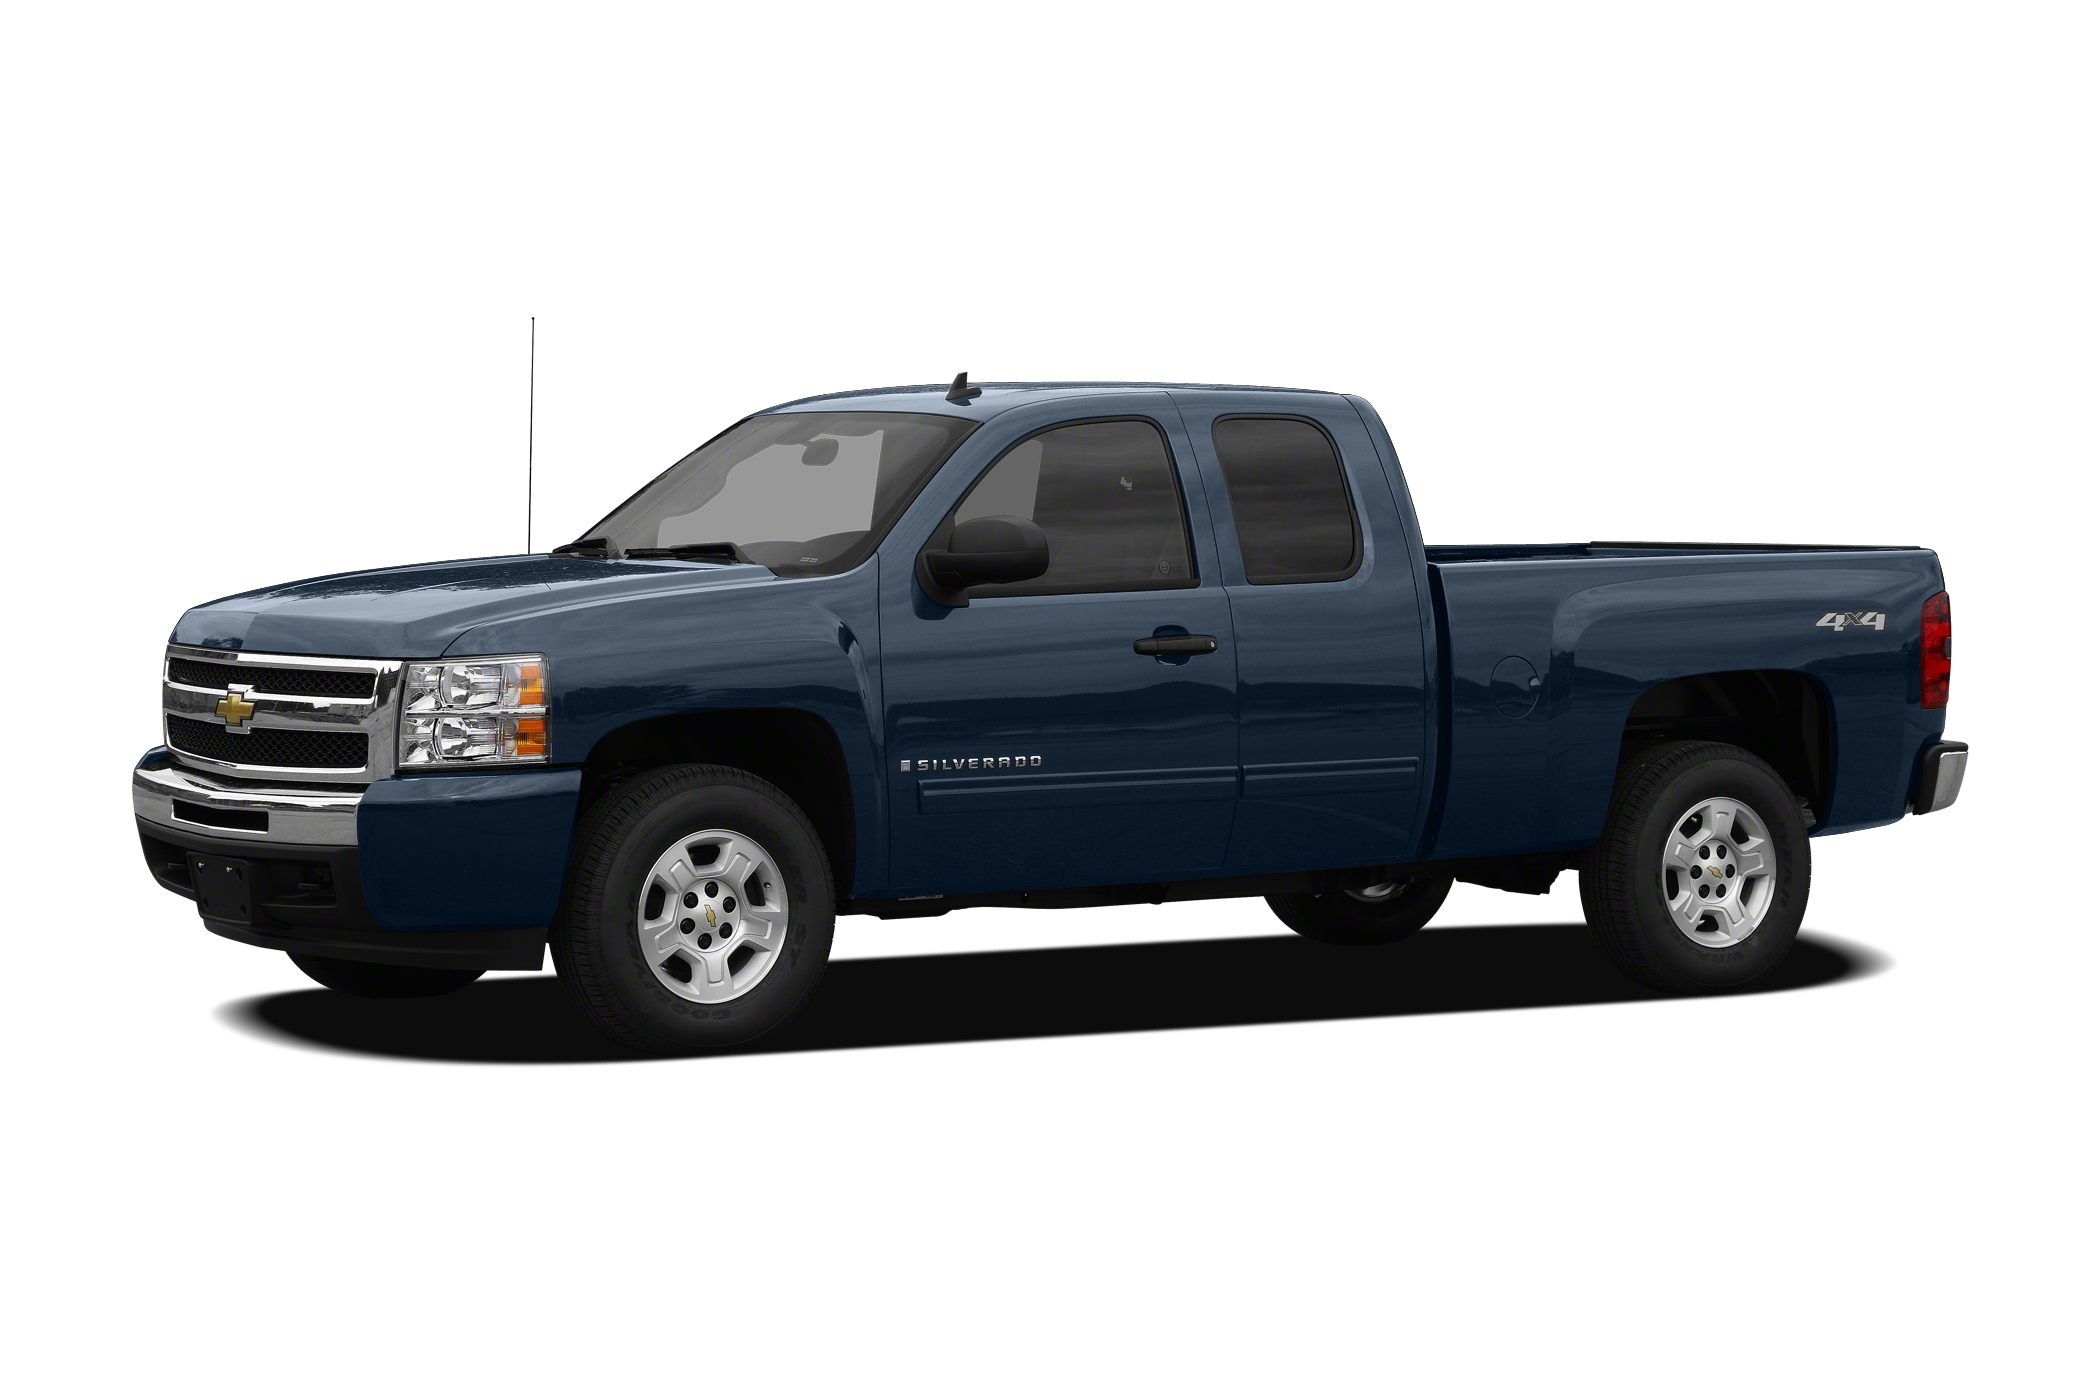 2011 Chevrolet Silverado 1500 LTZ Extended Cab Pickup for sale in Glen Burnie for $28,650 with 72,932 miles